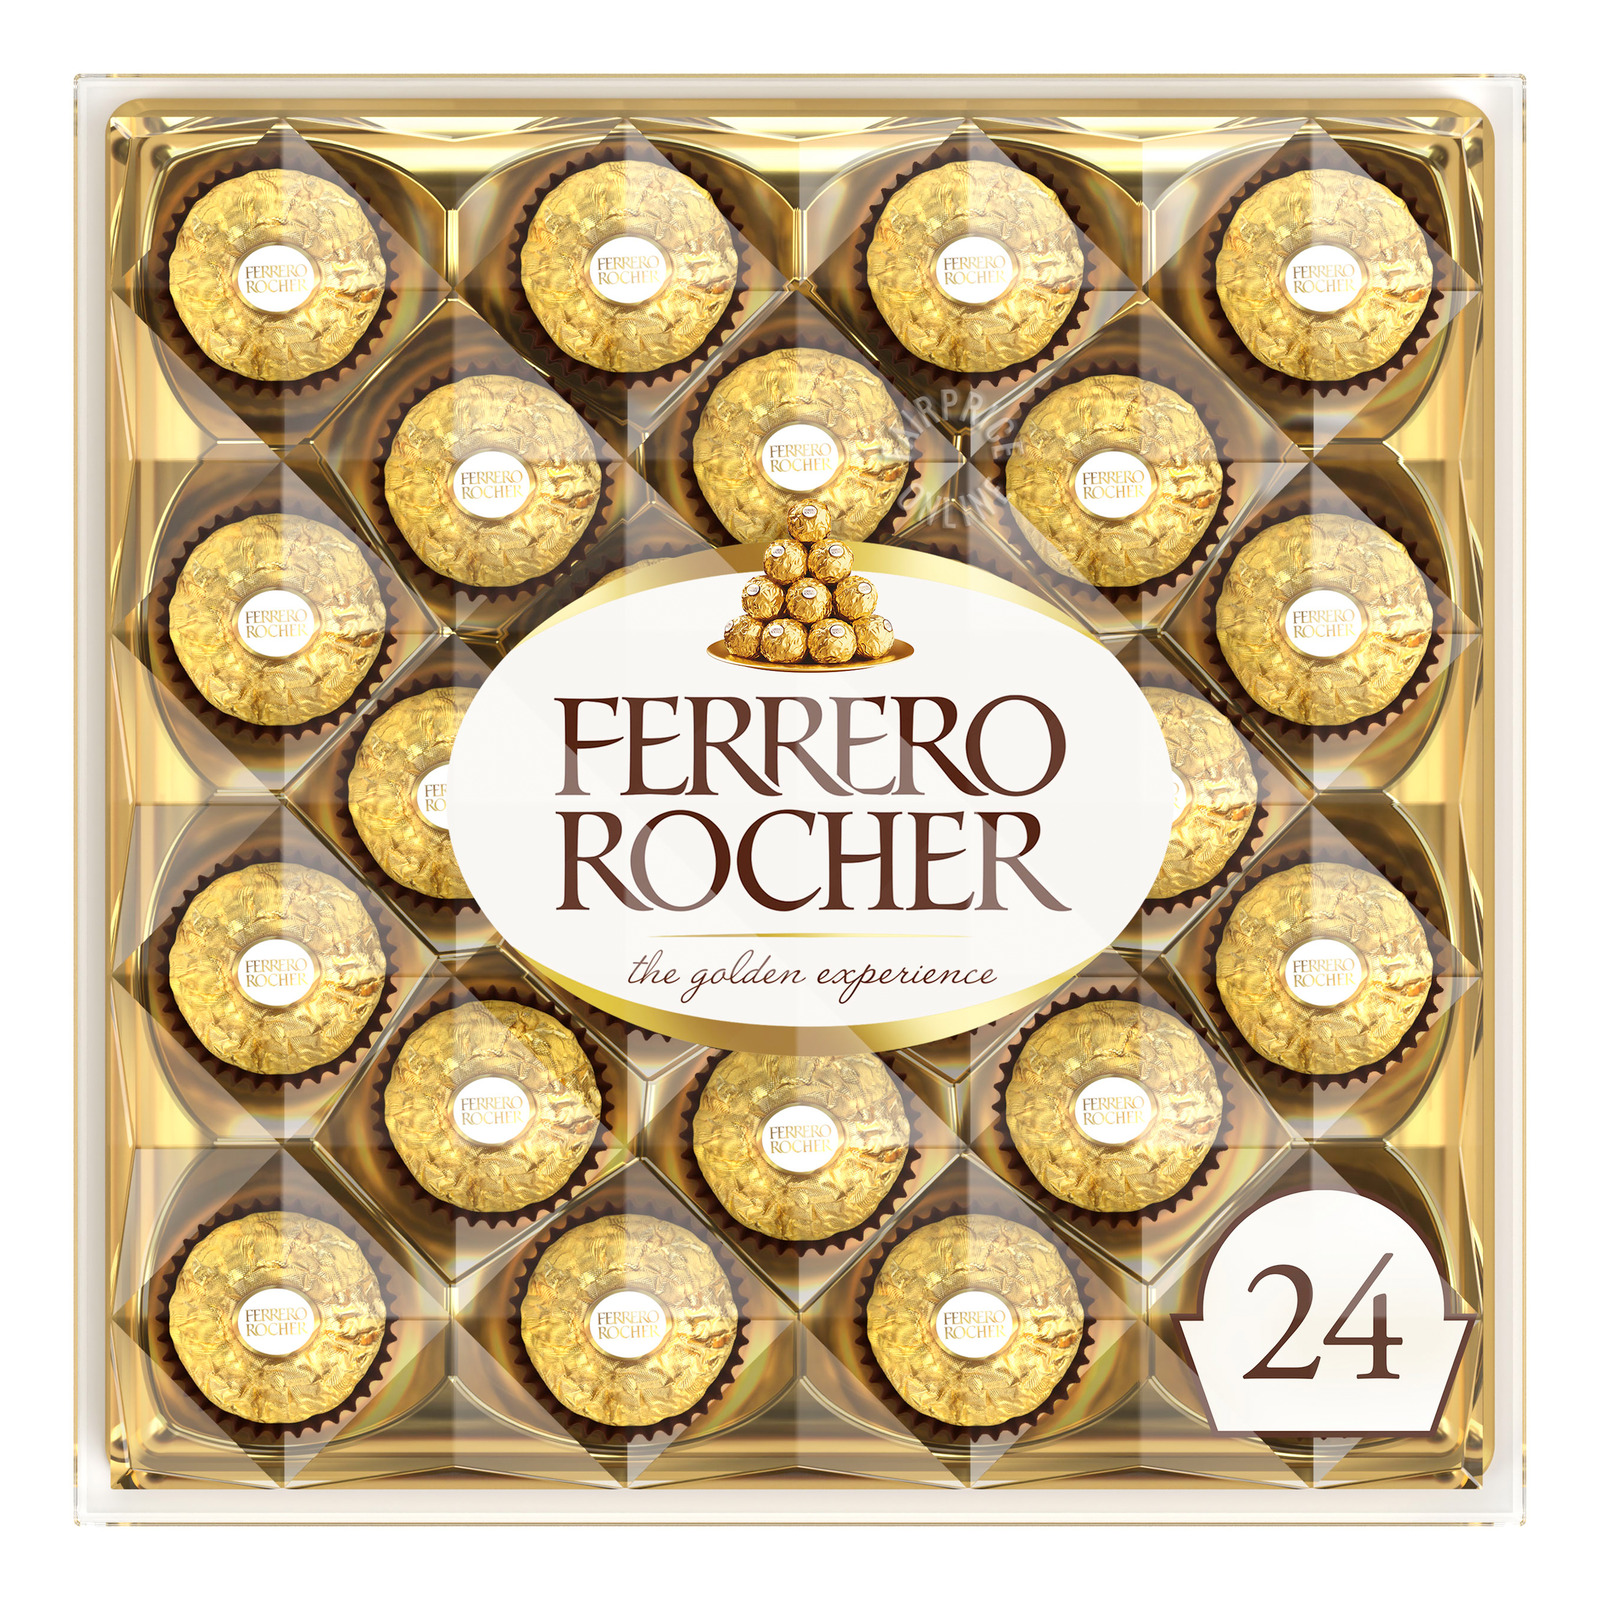 Ferrero Rocher Chocolate - T24